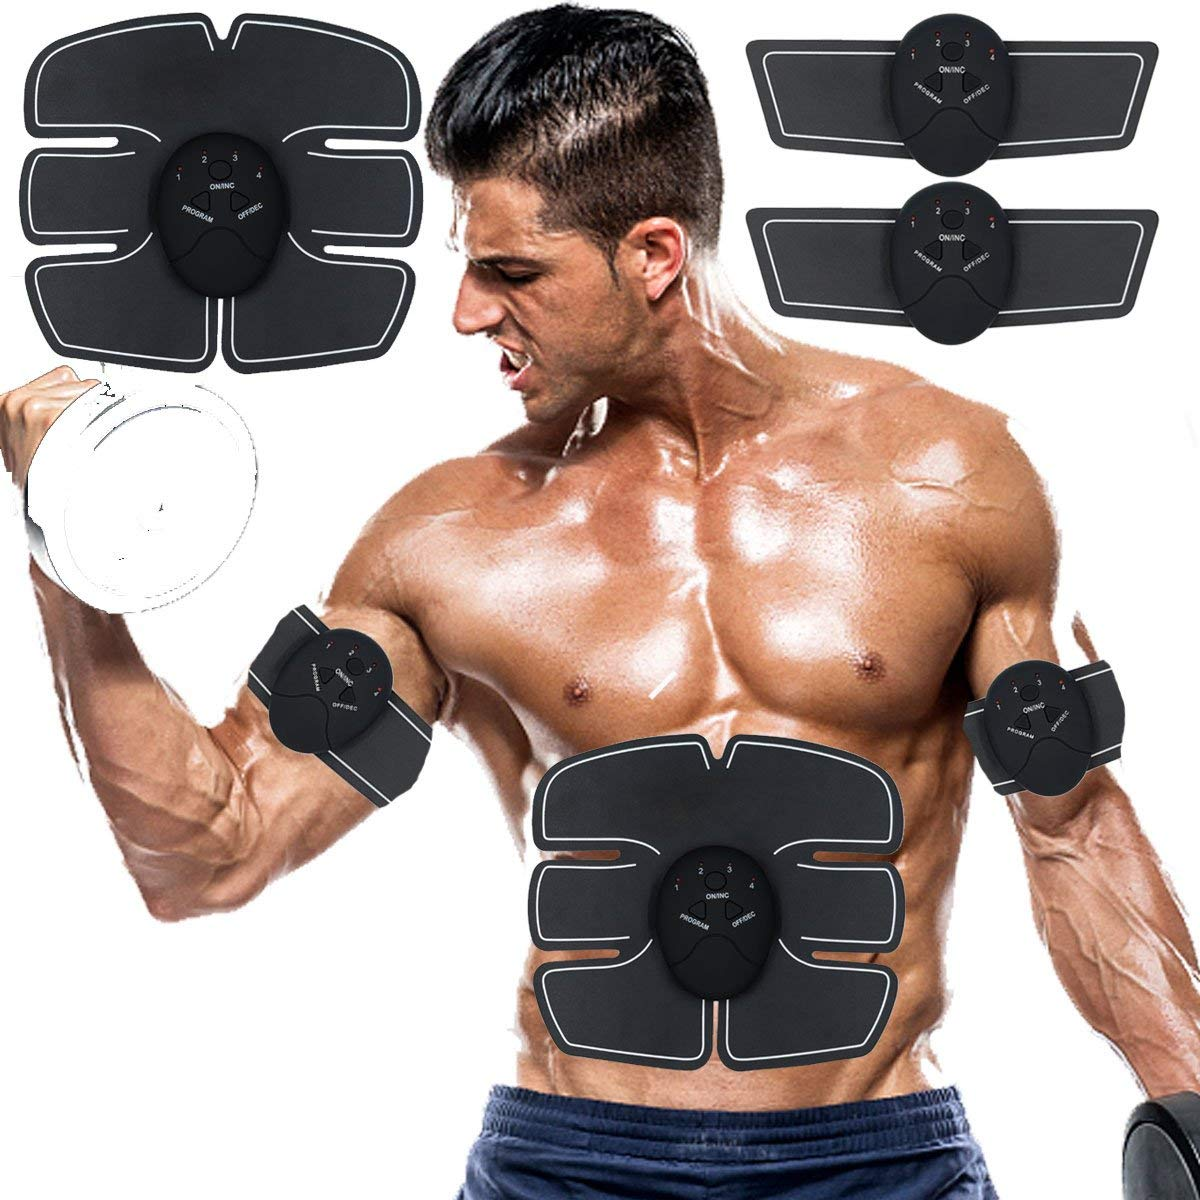 SPORTMAO Abs Stimulator Muscle Trainer Ultimate Abs Stimulator Ab Stimulator for Men Women Abdominal Work Out Ads Power Fitness Abs Muscle Training Gear ABS Workout Equipment Portable (black)